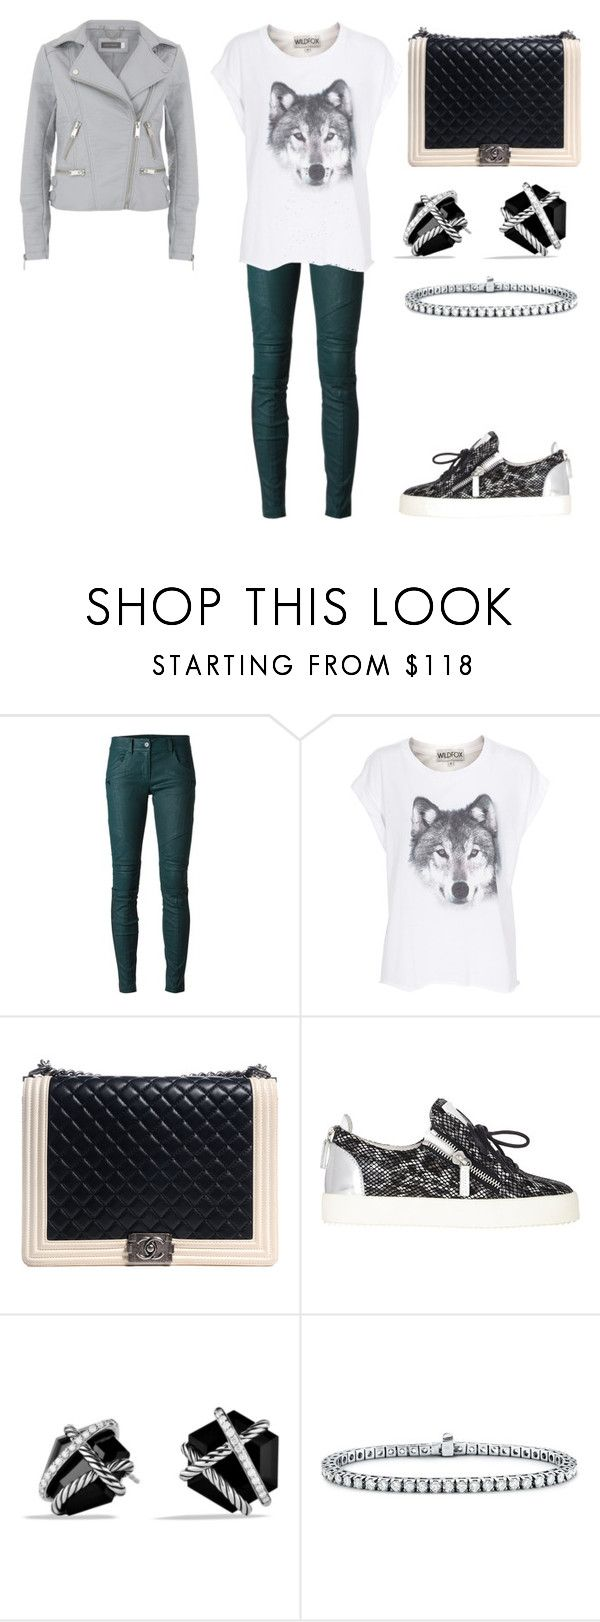 """Untitled #26650"" by edasn12 ❤ liked on Polyvore featuring DKNY, Wildfox, Chanel, Giuseppe Zanotti, David Yurman and Blue Nile"